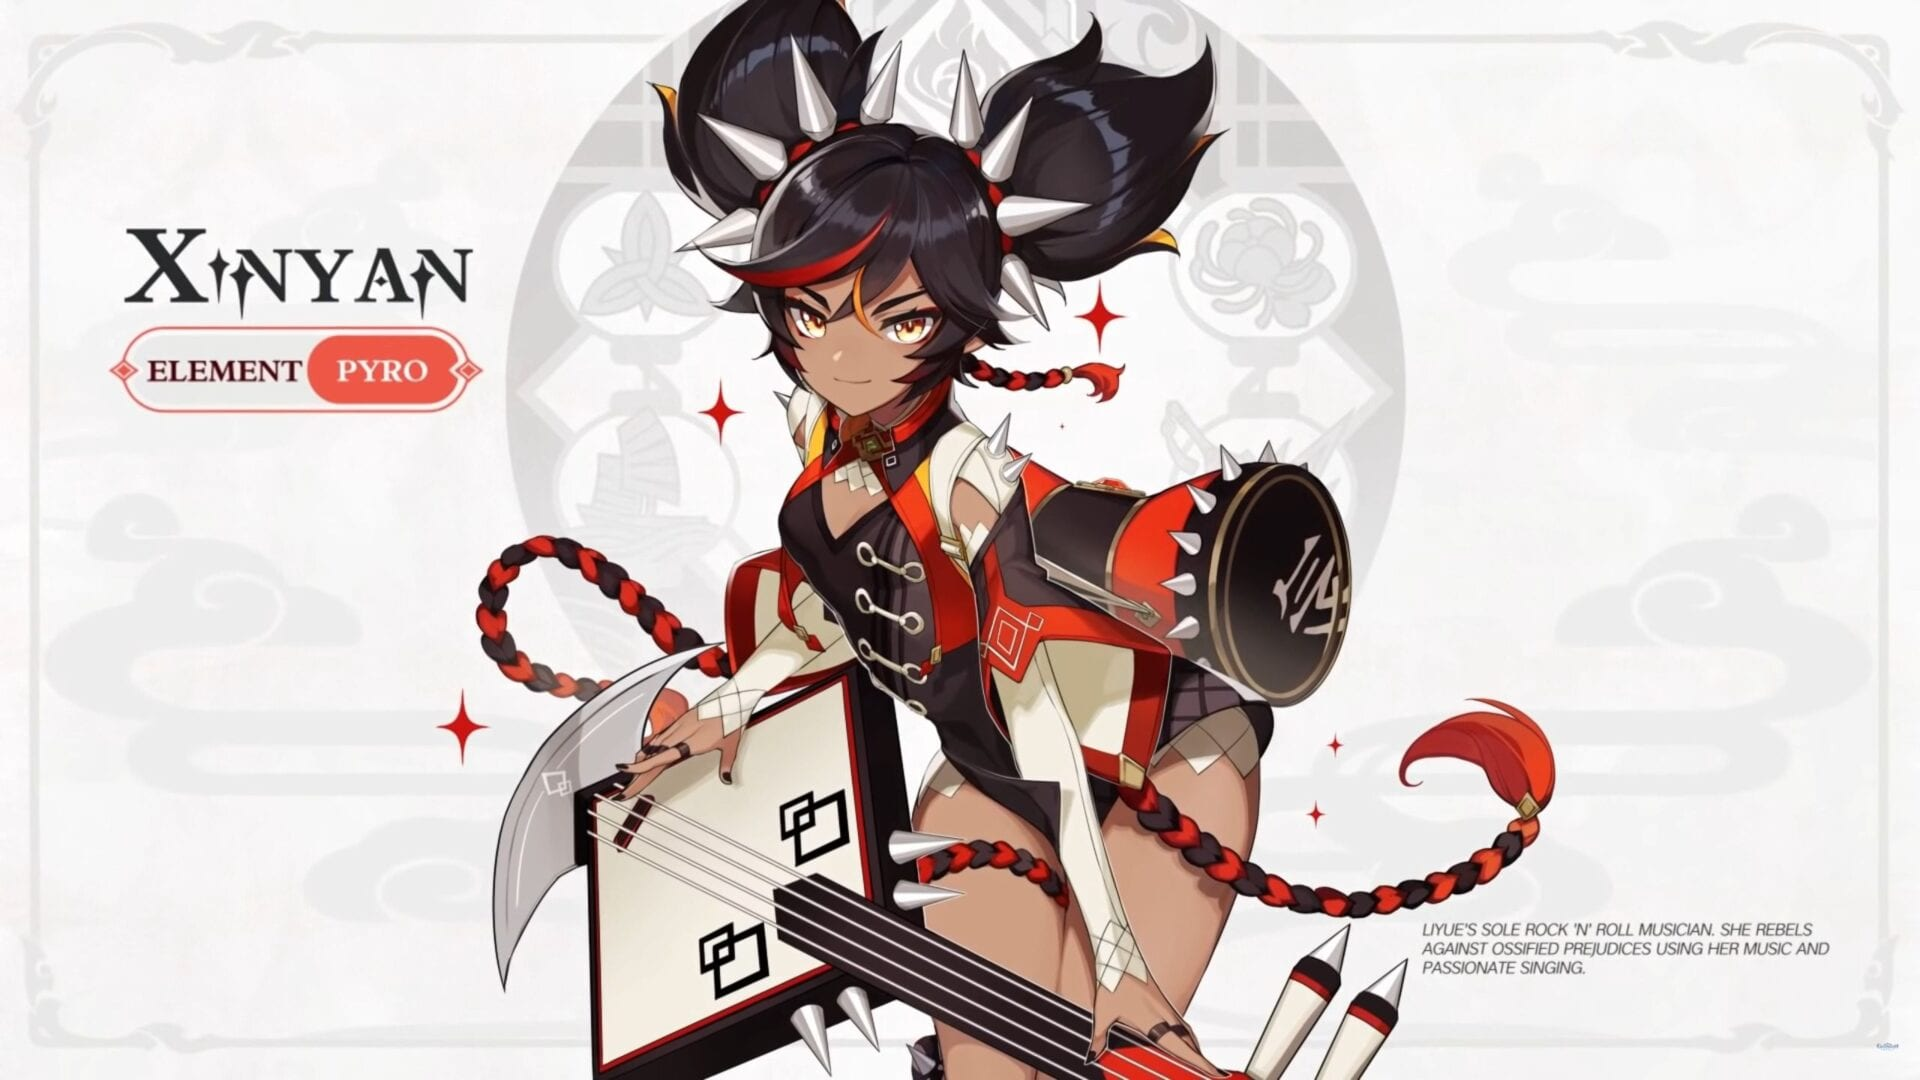 New Genshin Influence Trailer Introduces New Character Xinyan 1